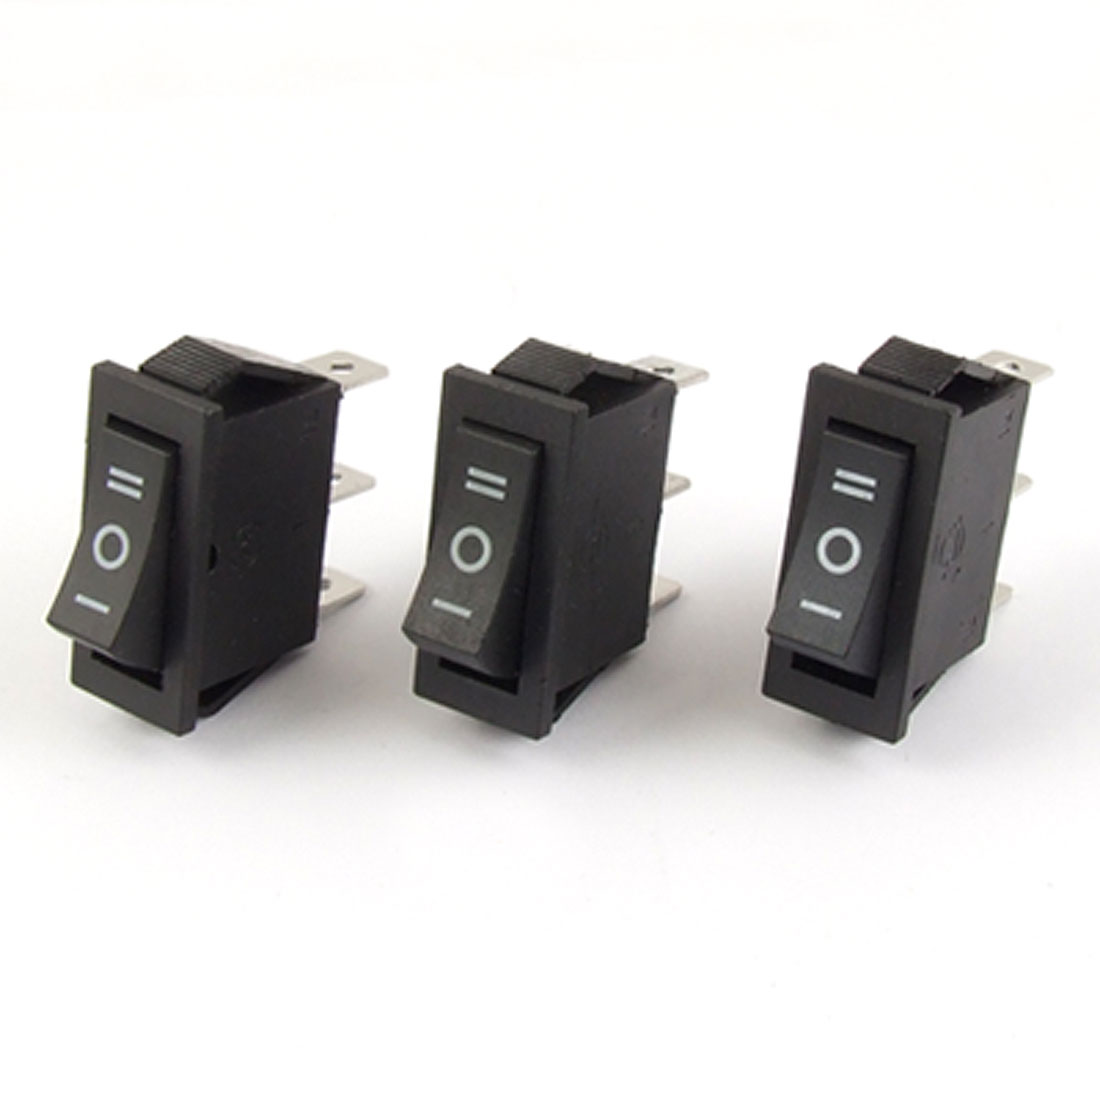 3x AC 15A/250V 16A/125V SPDT ON-OFF-ON 3 Position Snap in Rocker Switch UL Listed